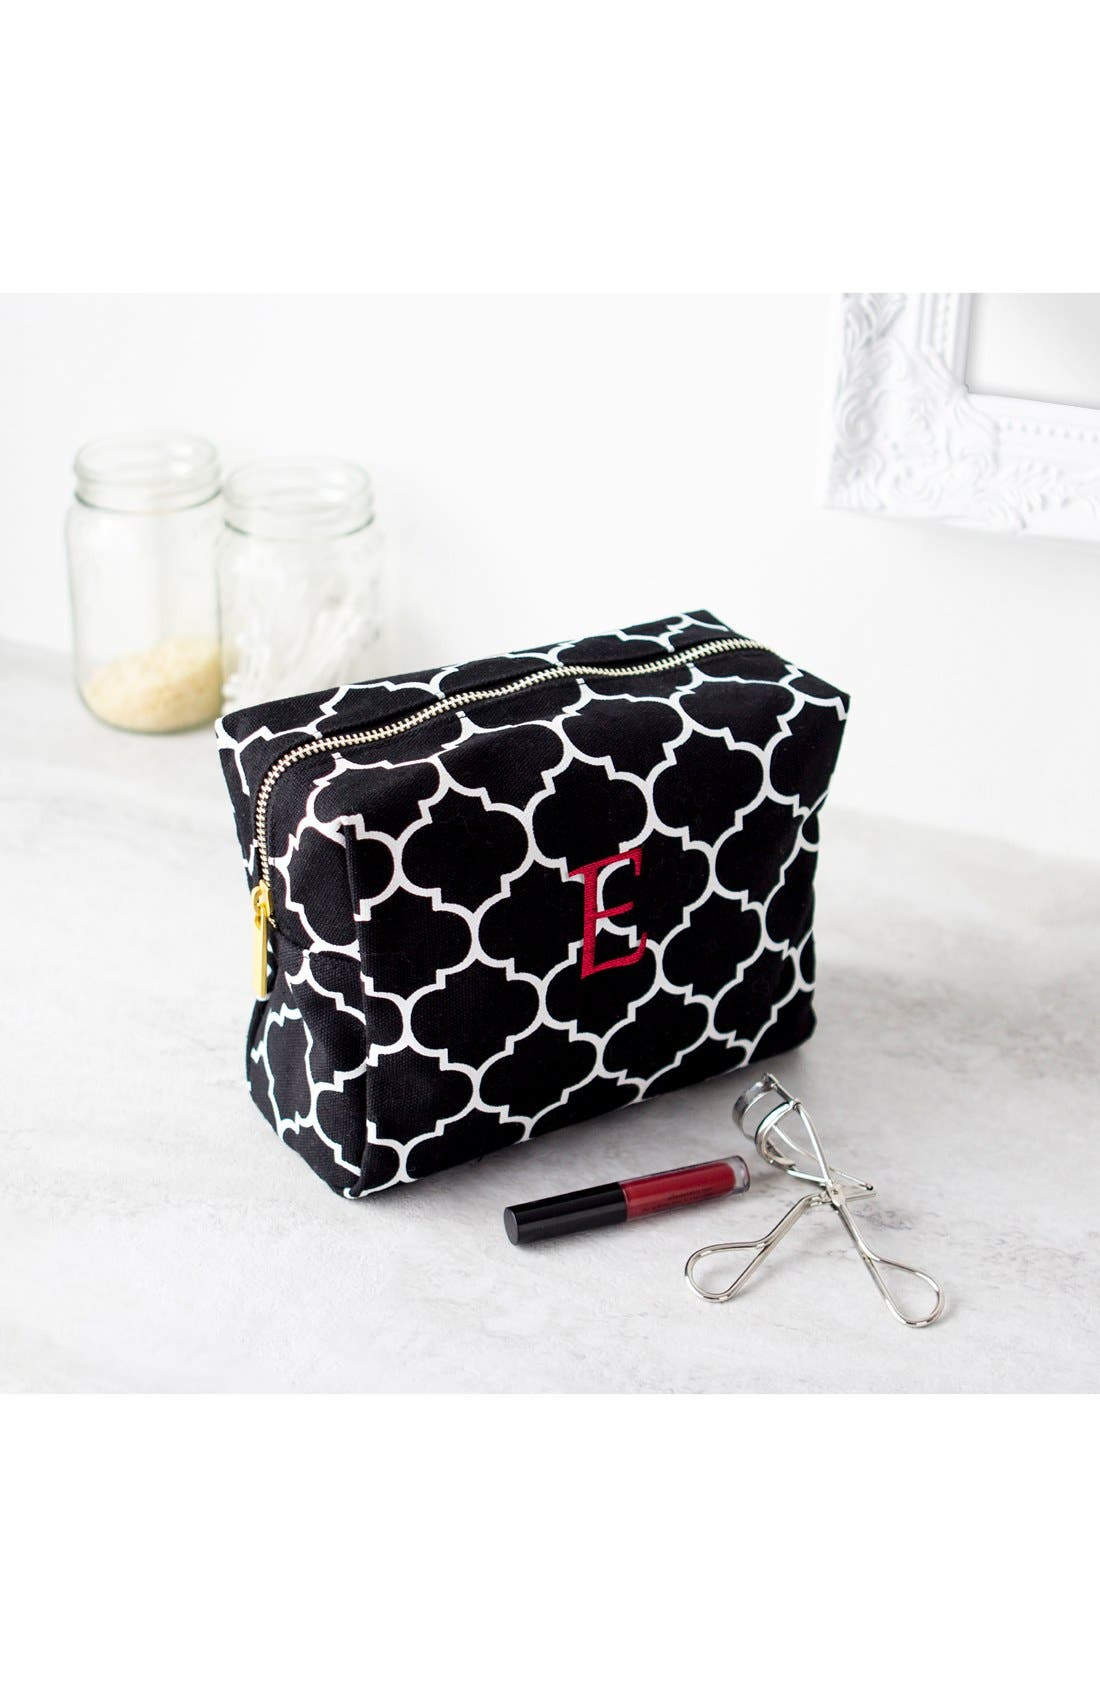 Monogram Cosmetics Bag,                             Alternate thumbnail 5, color,